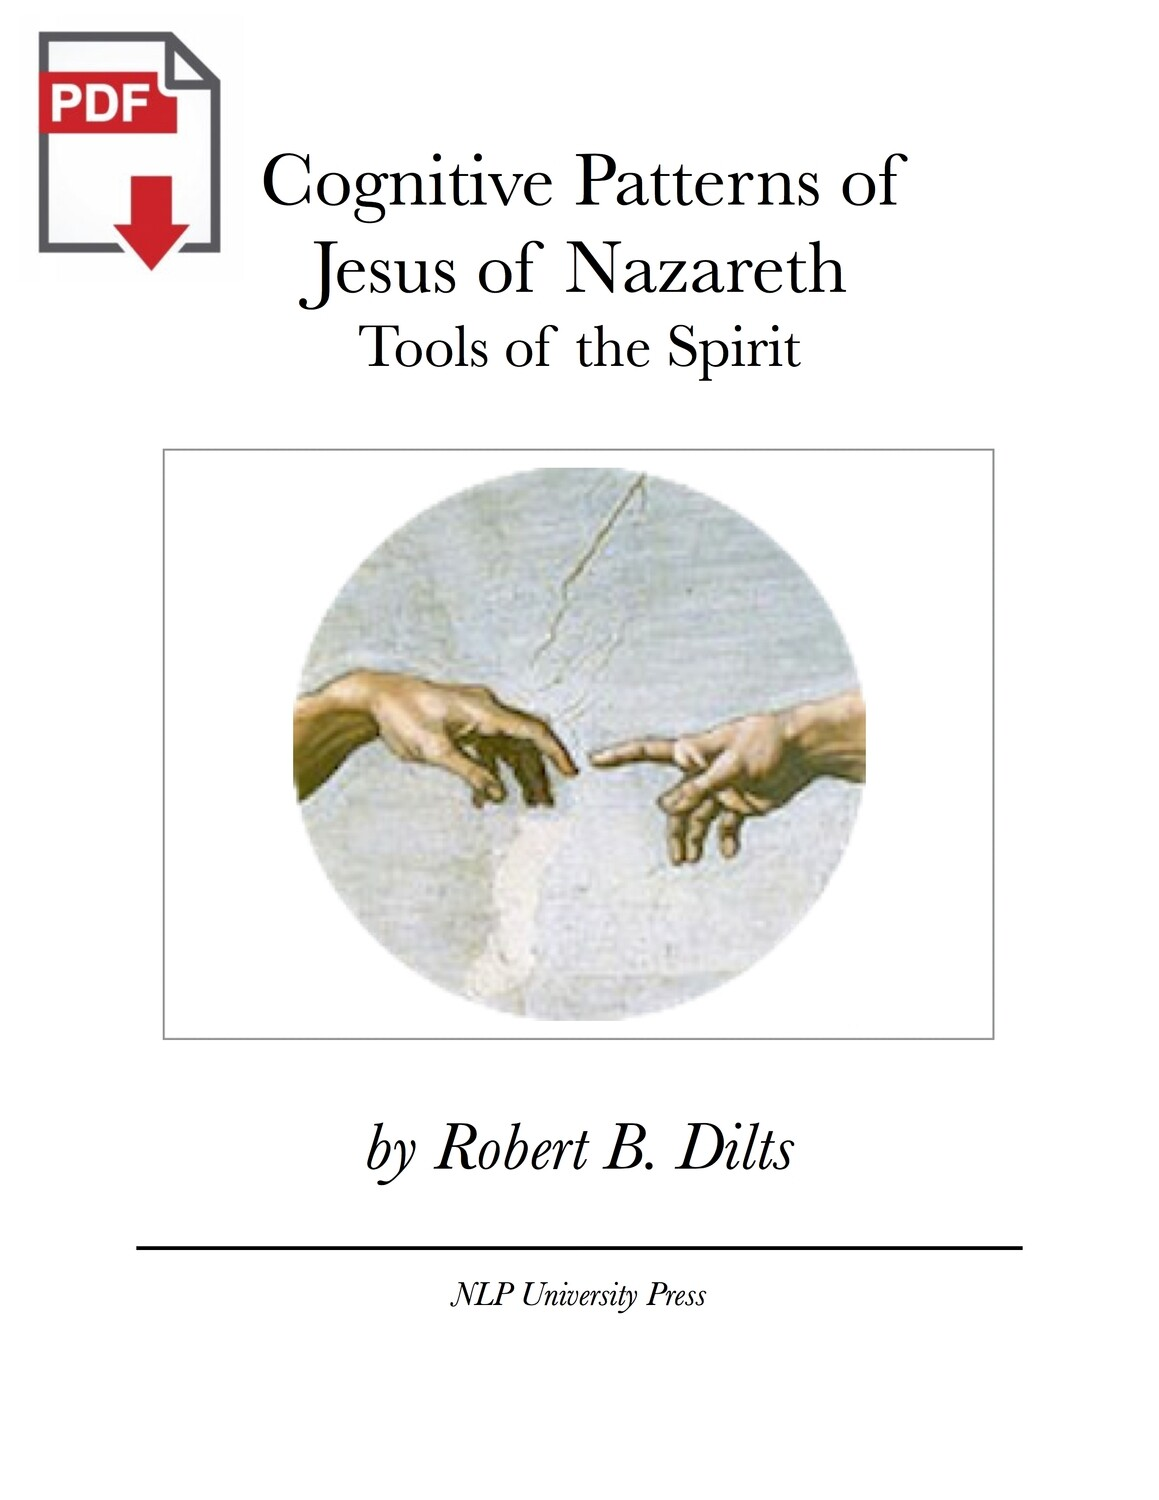 Cognitive Patterns of Jesus of Nazareth: Tools of the Spirit [PDF]